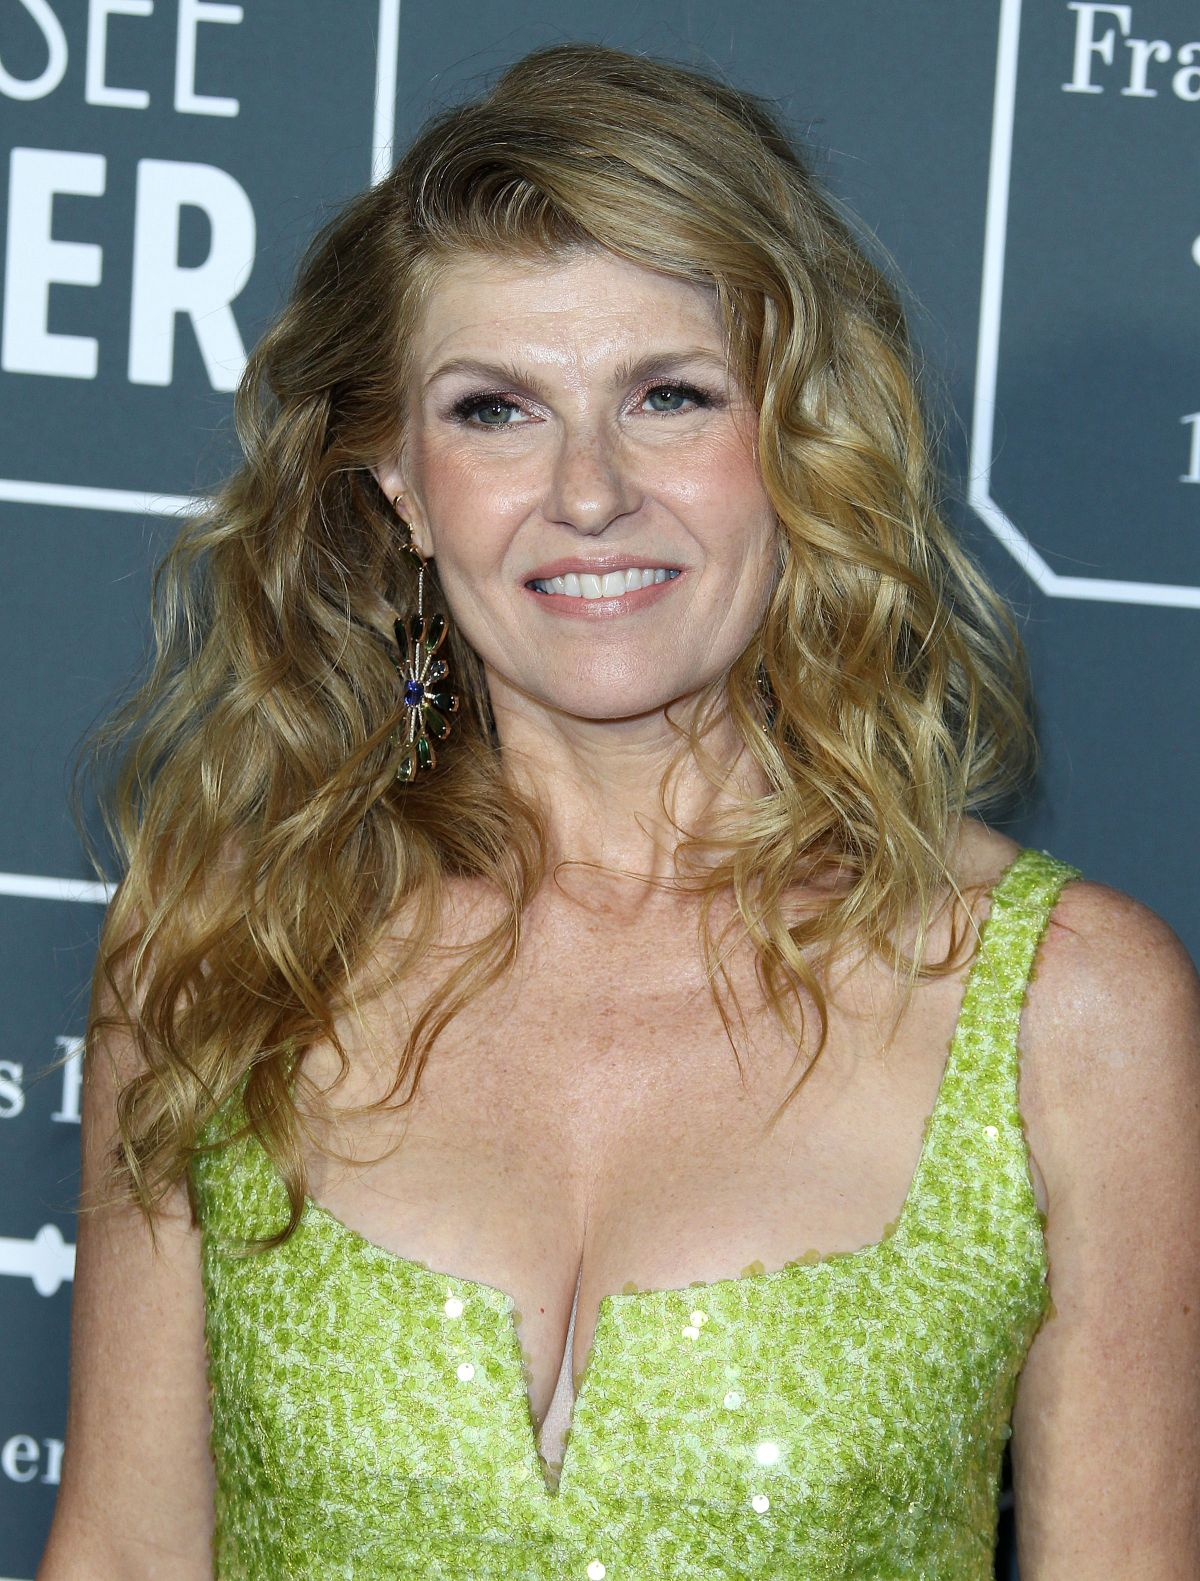 Connie Britton Hottest Bikini Pictures - Expose Her Sexy Feet And Body